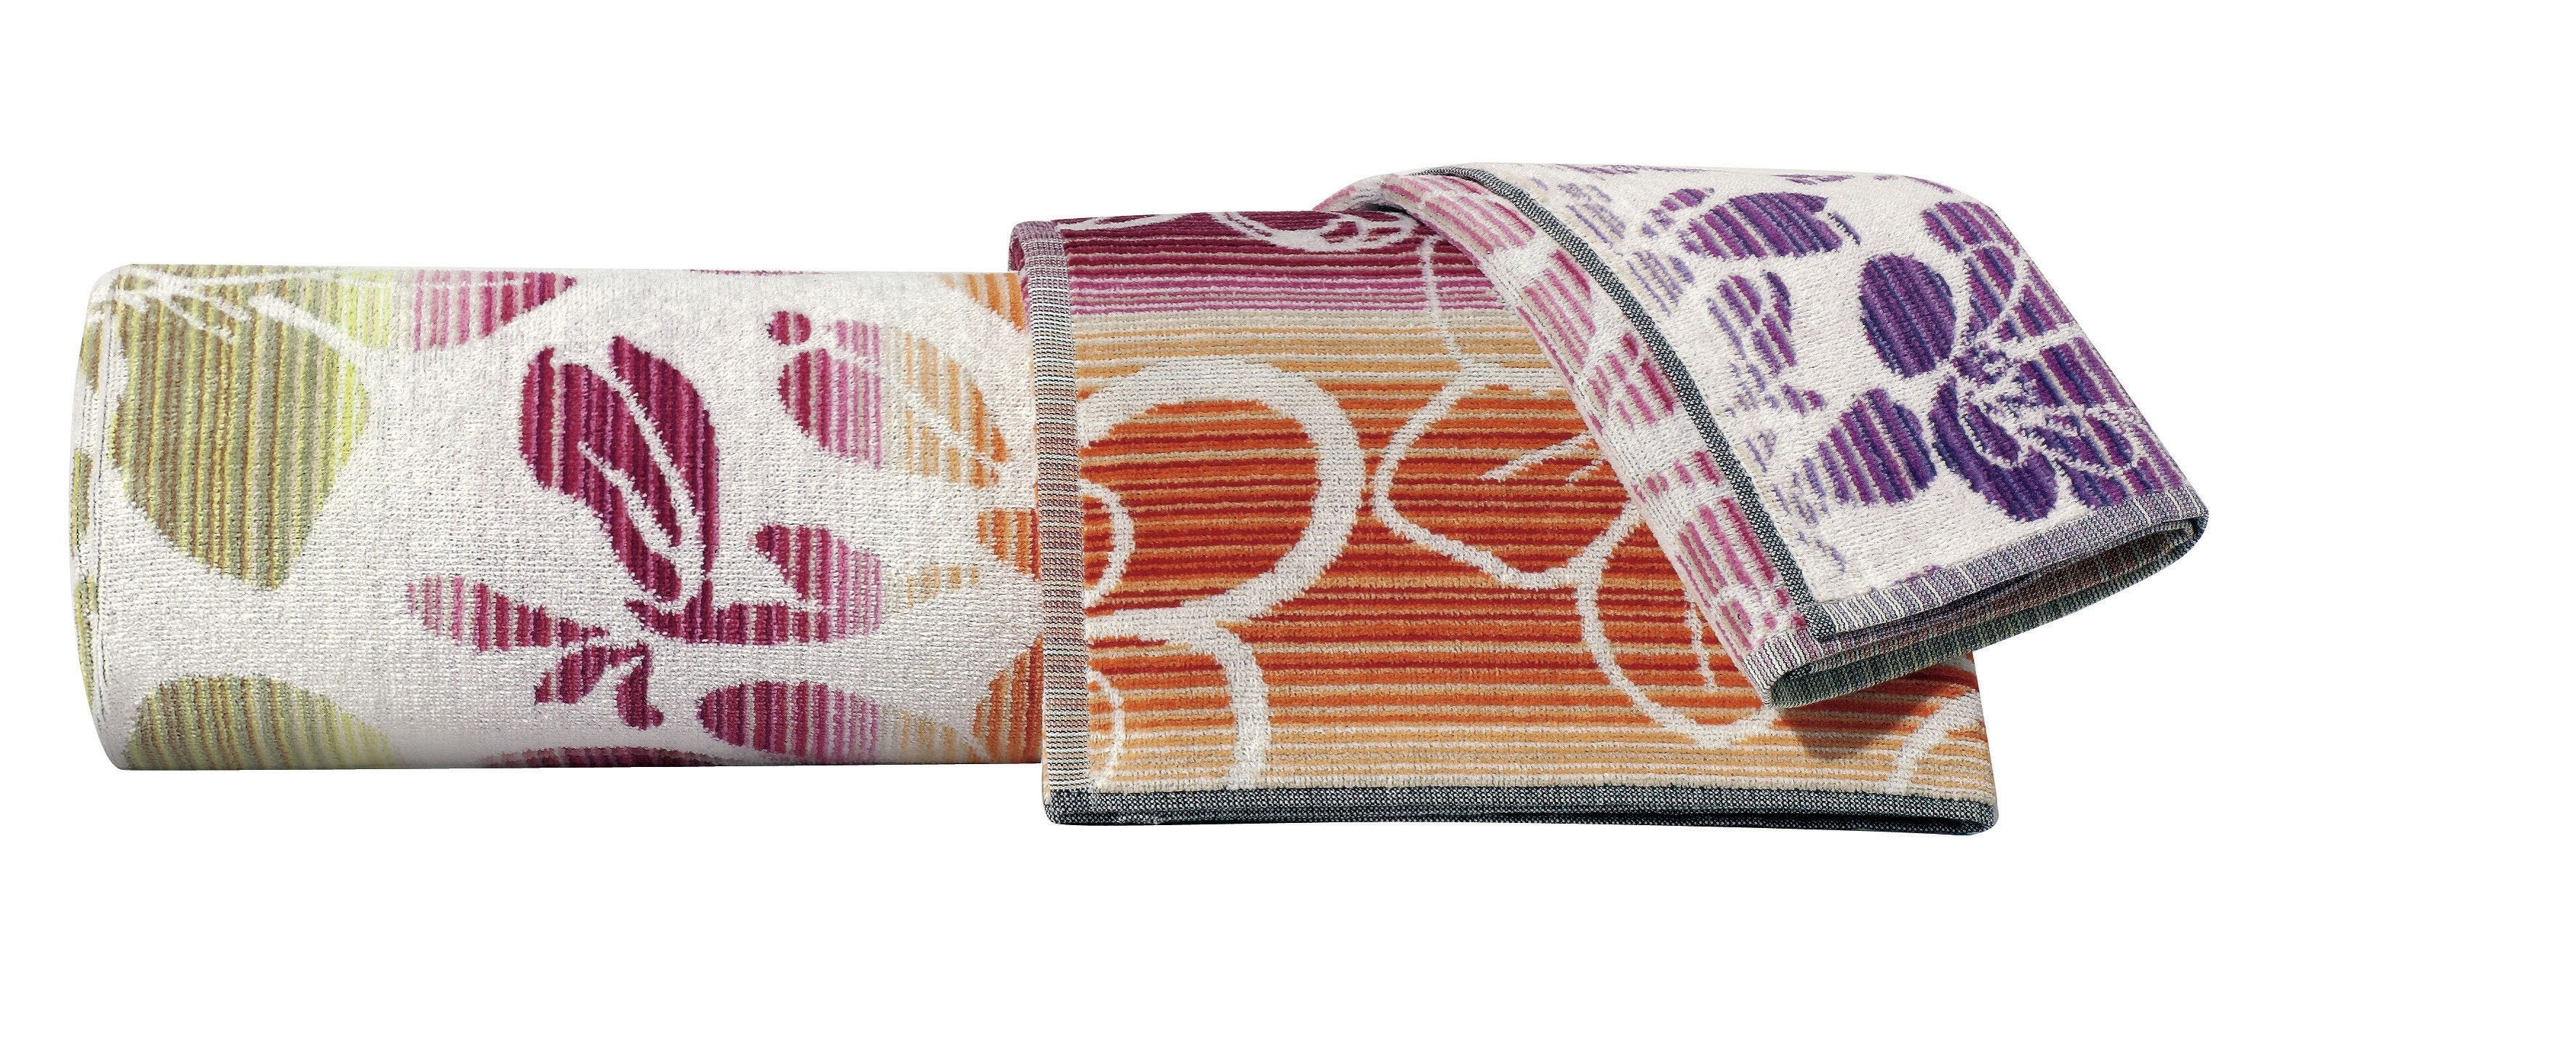 Penelope Bath Towels Missonihome Towel Bath Towels